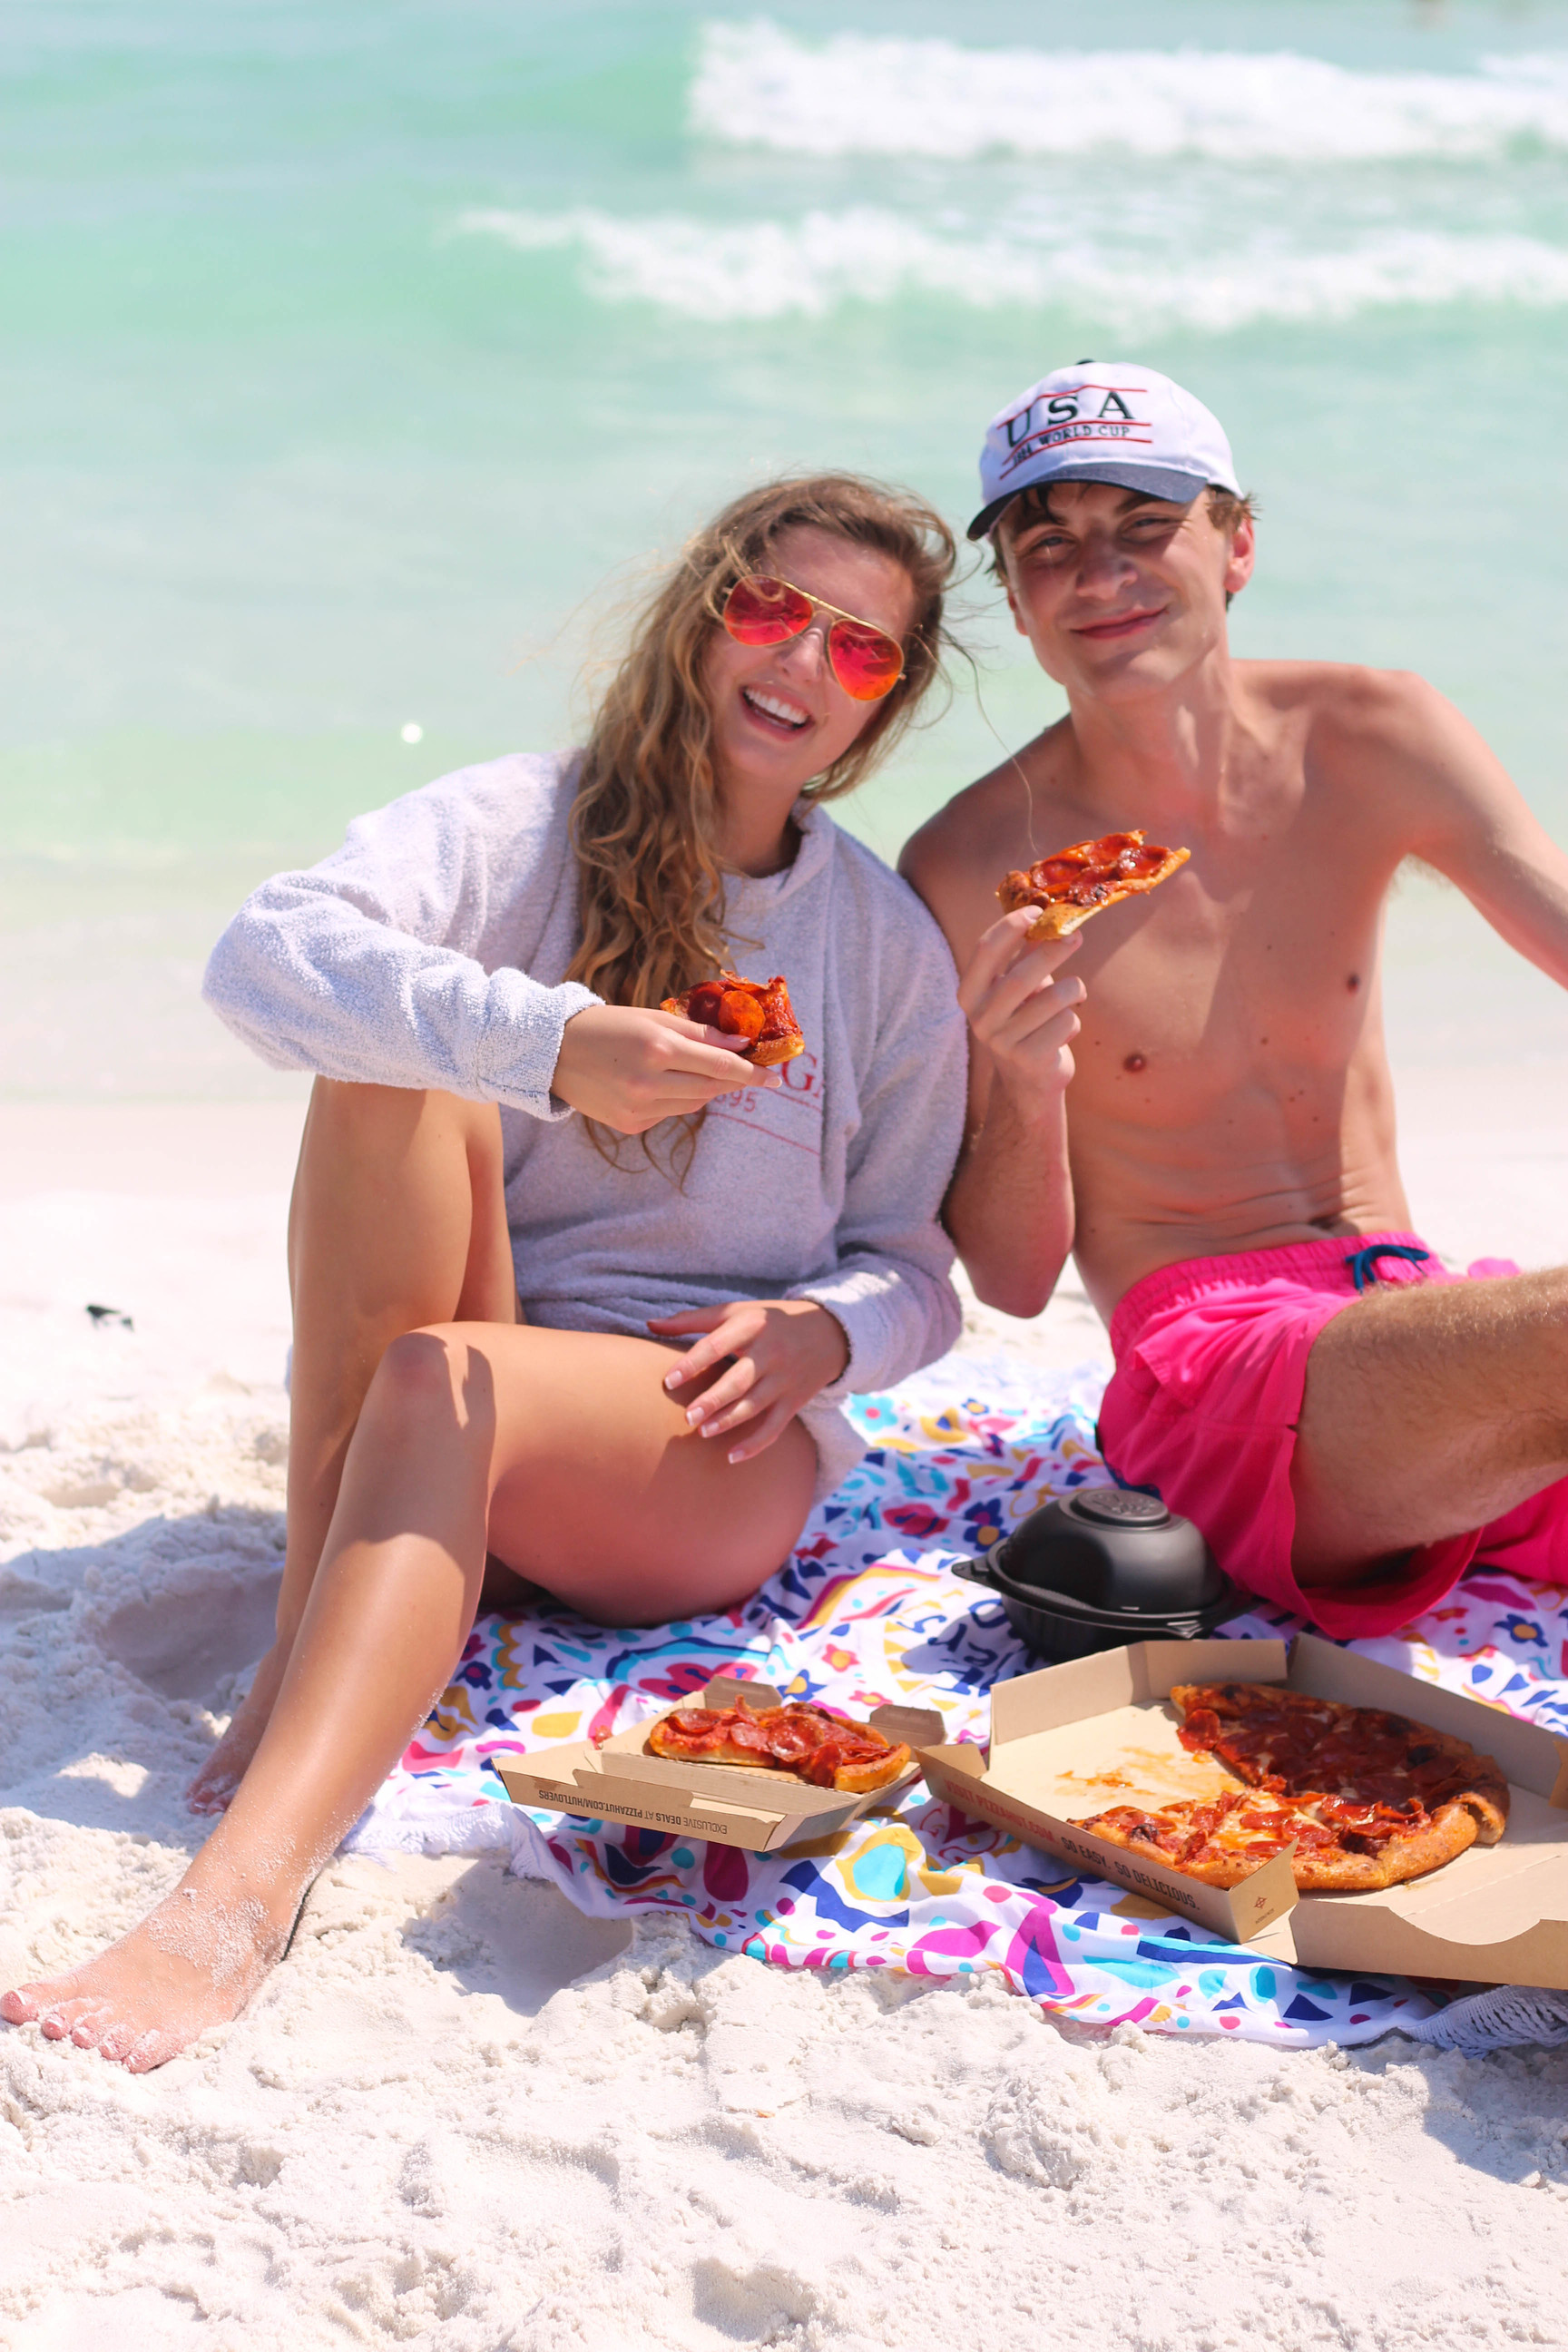 Pizza Hut Beach Picnic with my boyfriend, beach pictures, couple goals, cute couple by lauren lindmark on daily dose of charm